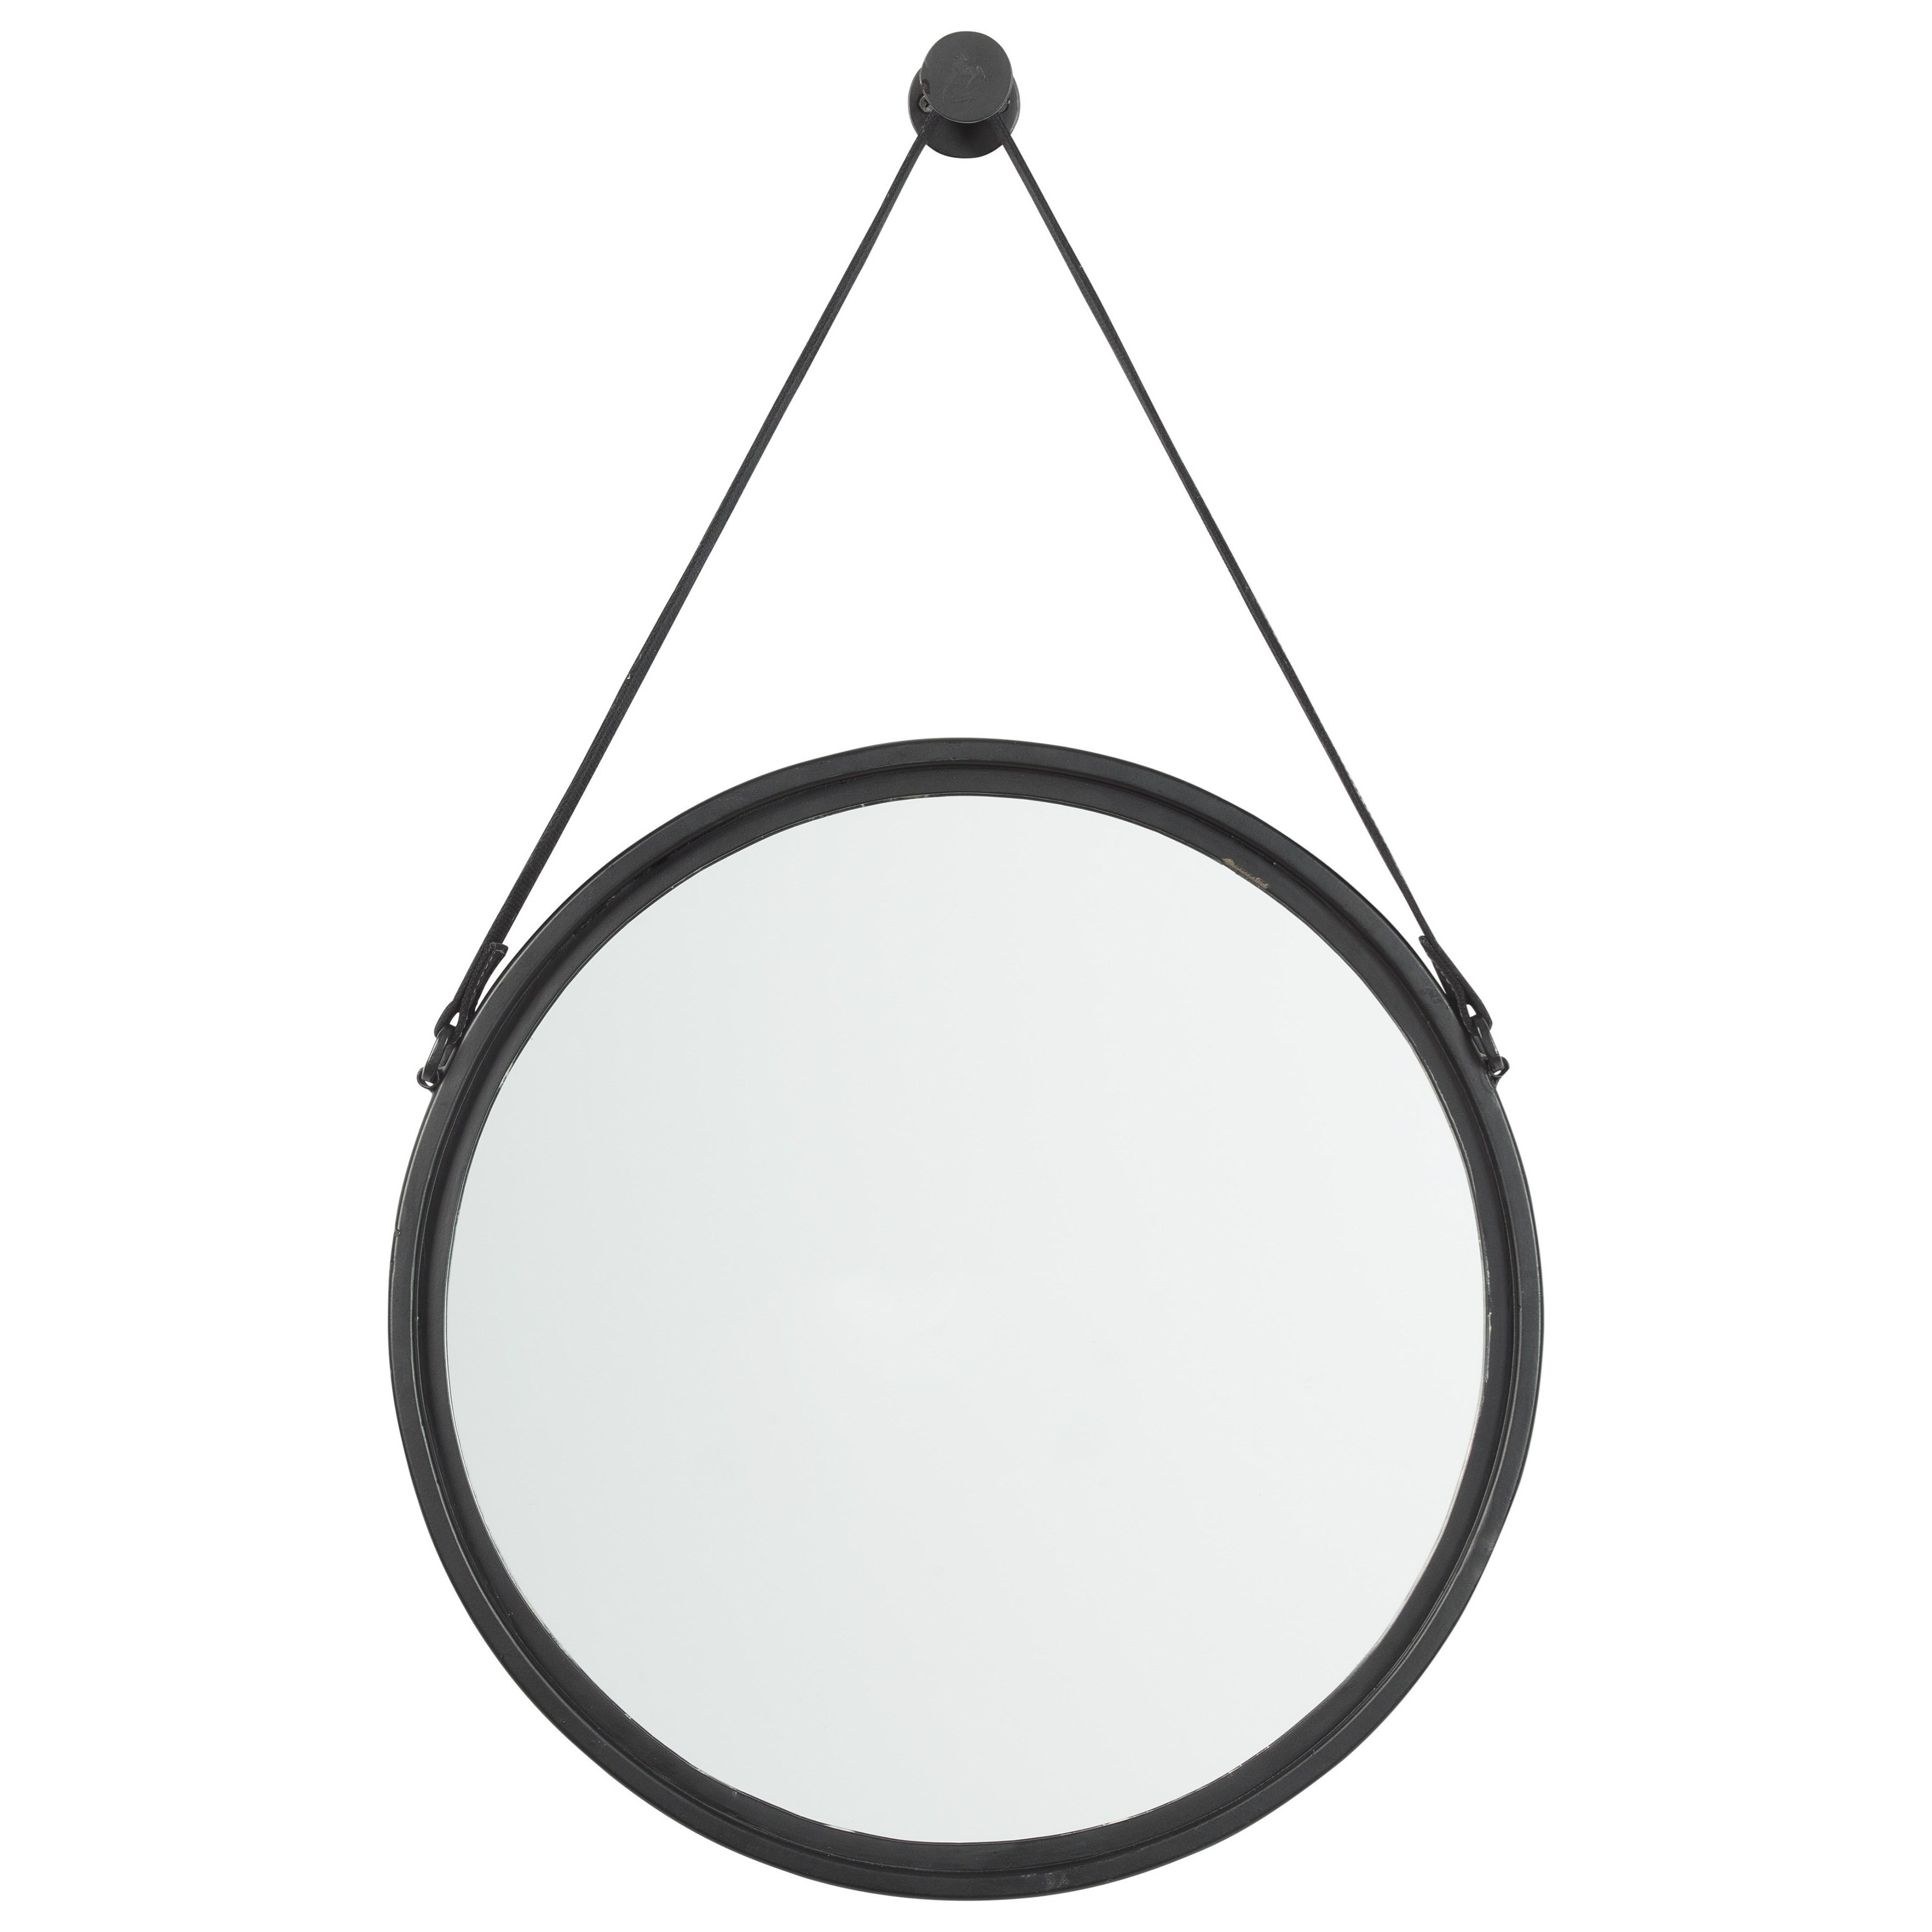 Accent Mirrors Dusan Black Accent Mirror by Signature Design by Ashley at Pilgrim Furniture City